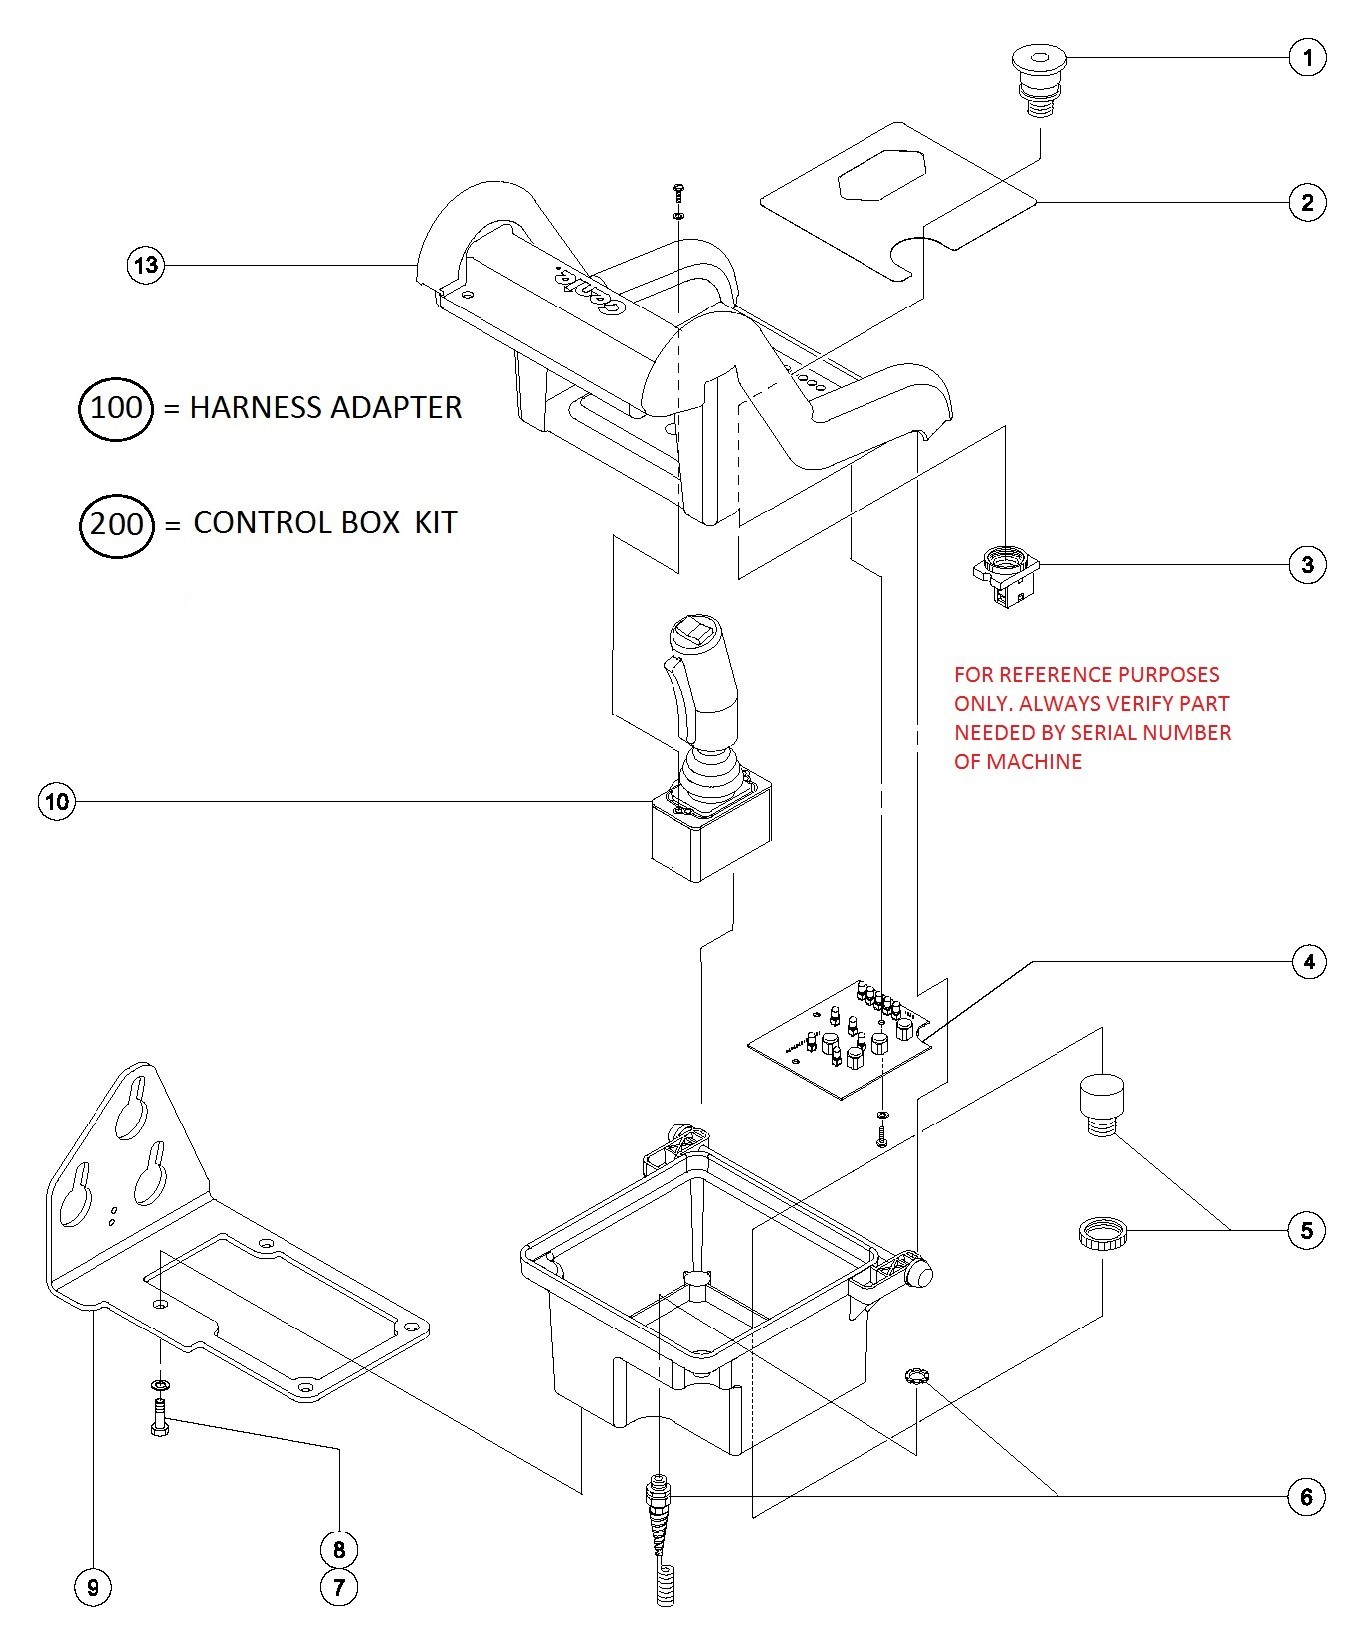 Snorkel 5000 Scissor Lift Wiring Diagram Pdf 6f206d Upright Scissor Lift Wiring Diagram